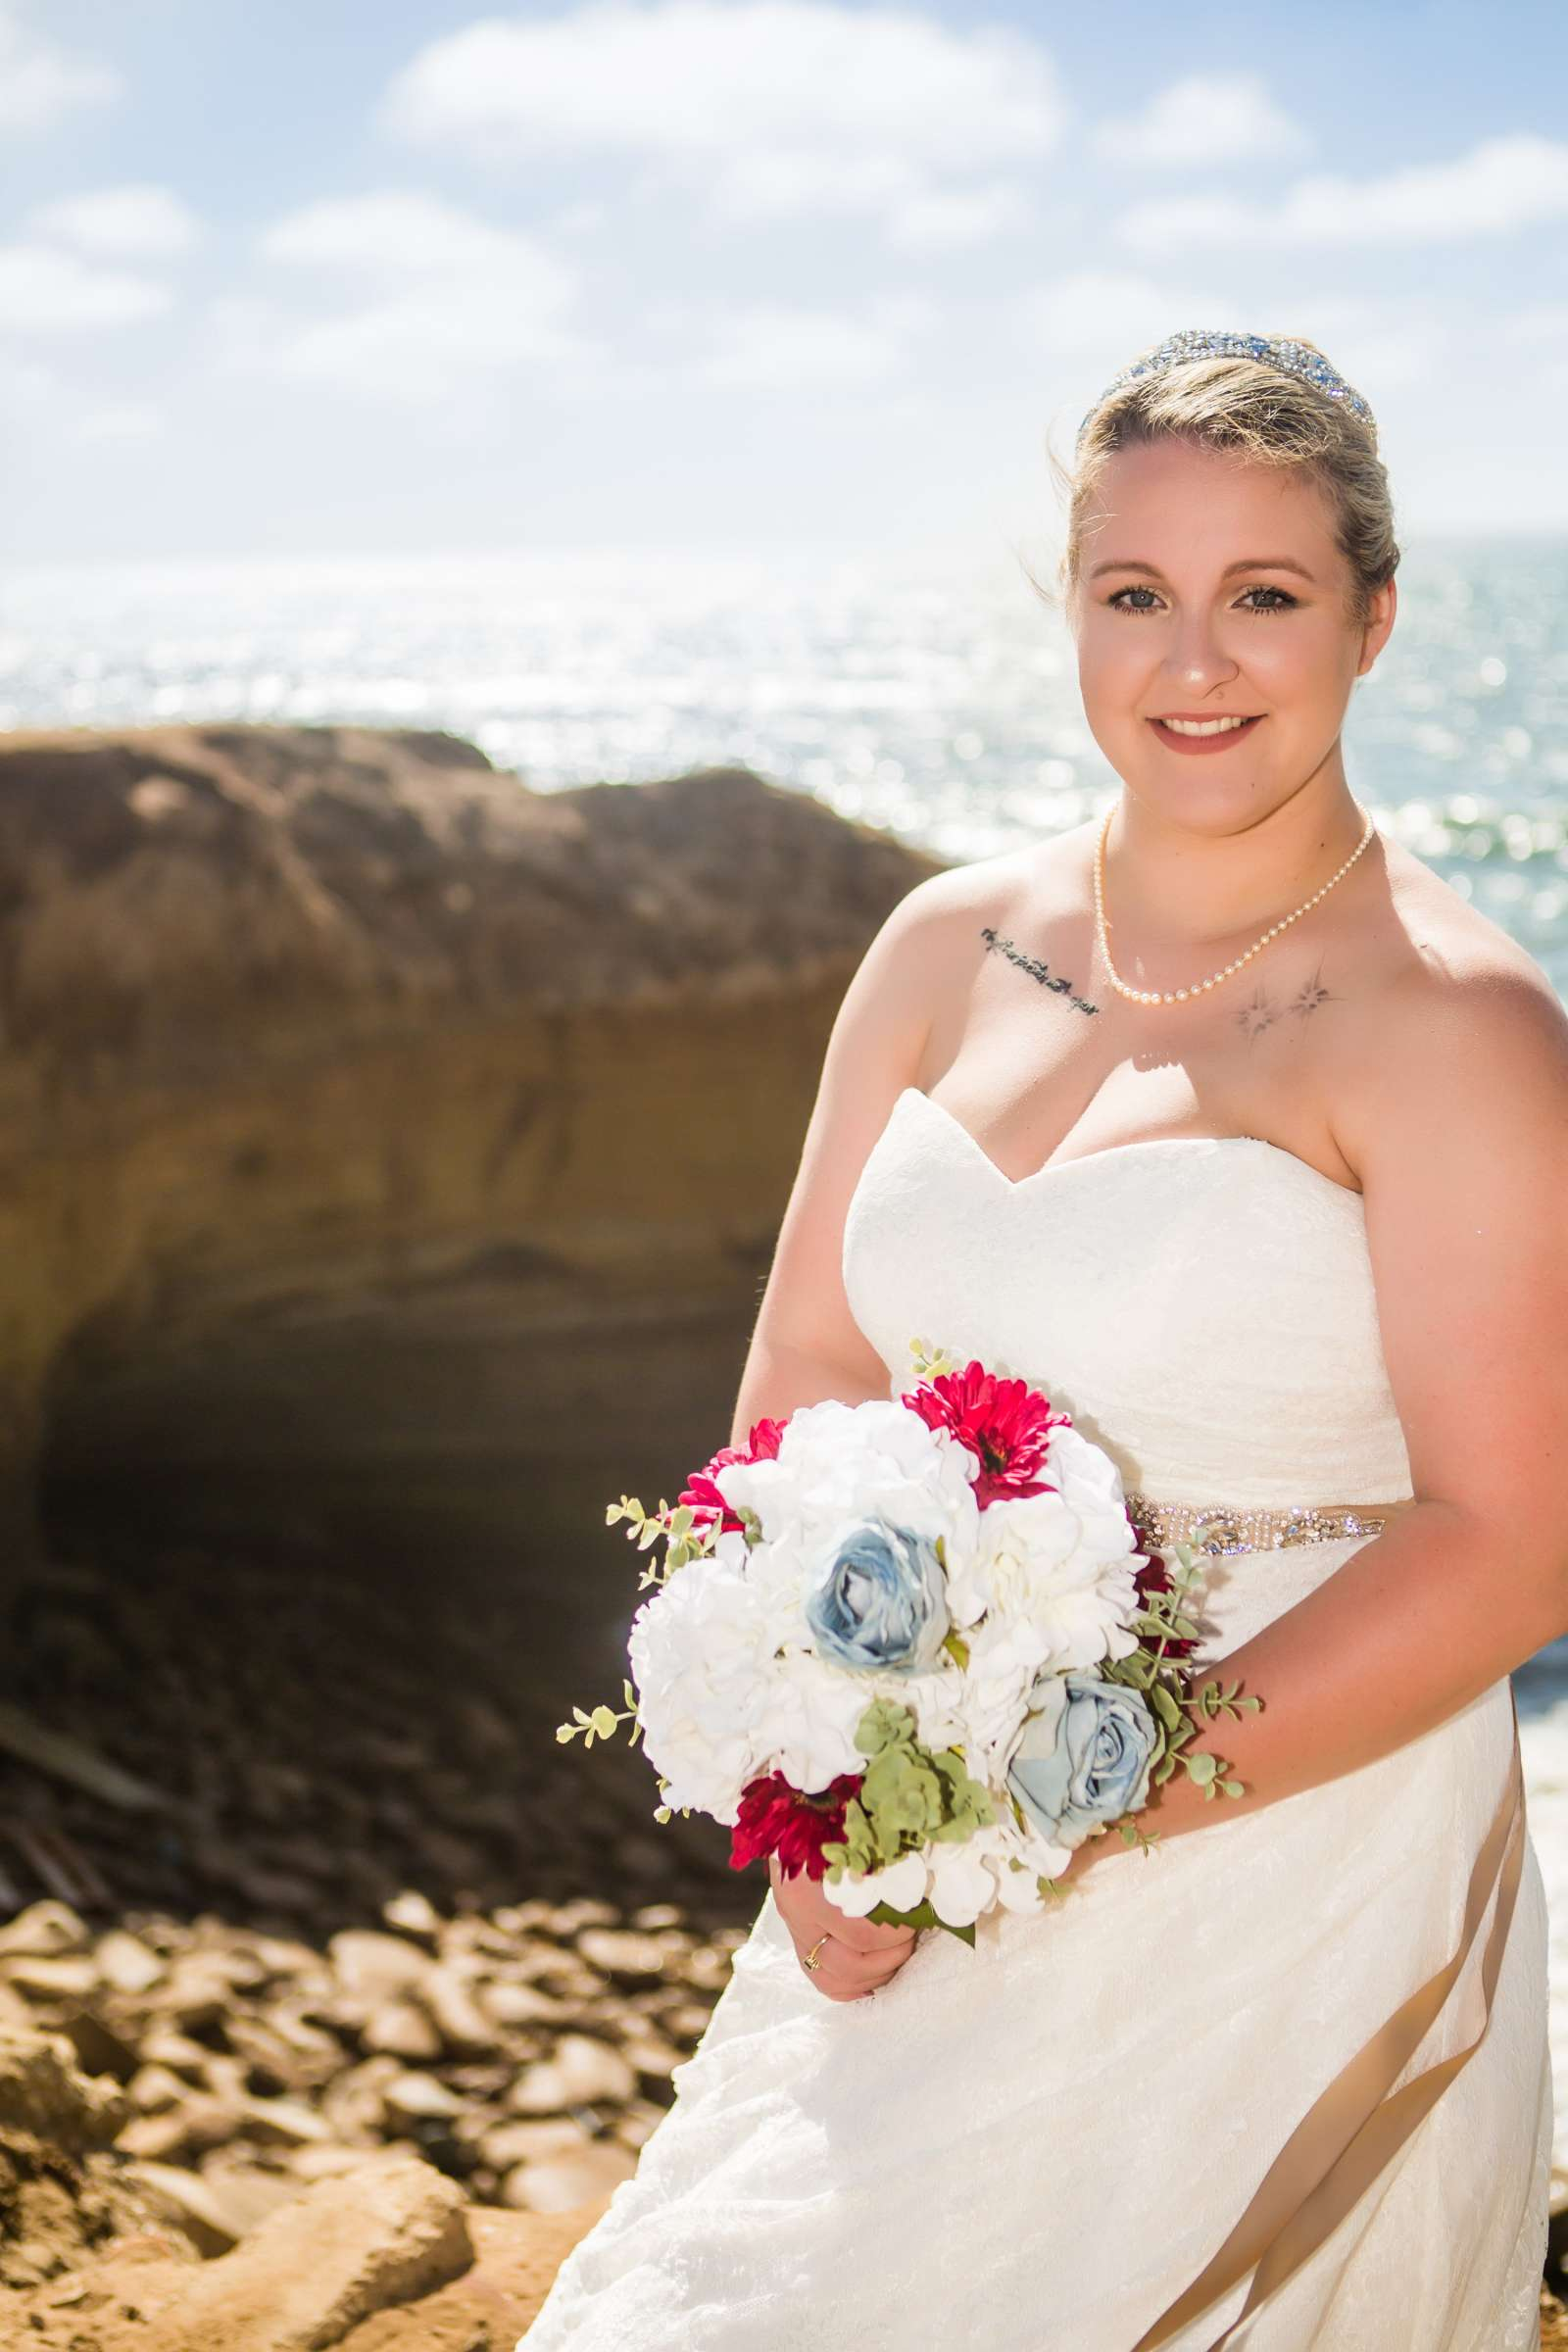 The Inn at Sunset Cliffs Wedding, Melinda and Benjamin Wedding Photo #33 by True Photography